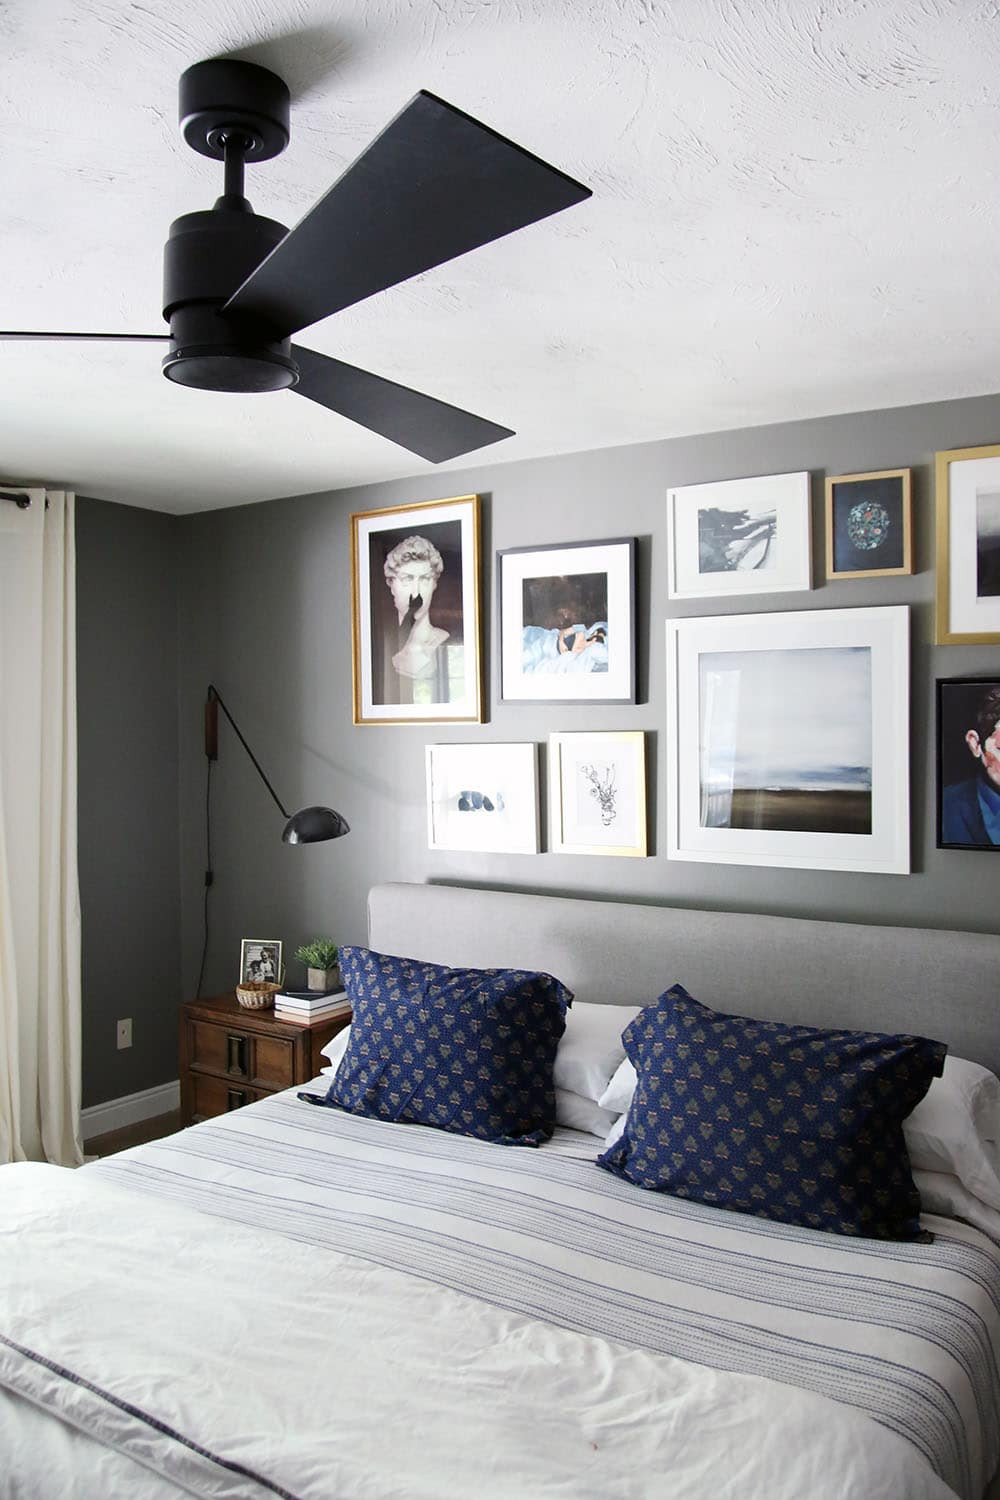 Best ideas about Bedroom Ceiling Fan . Save or Pin A Modern Ceiling Fan in our Bedroom Chris Loves Julia Now.